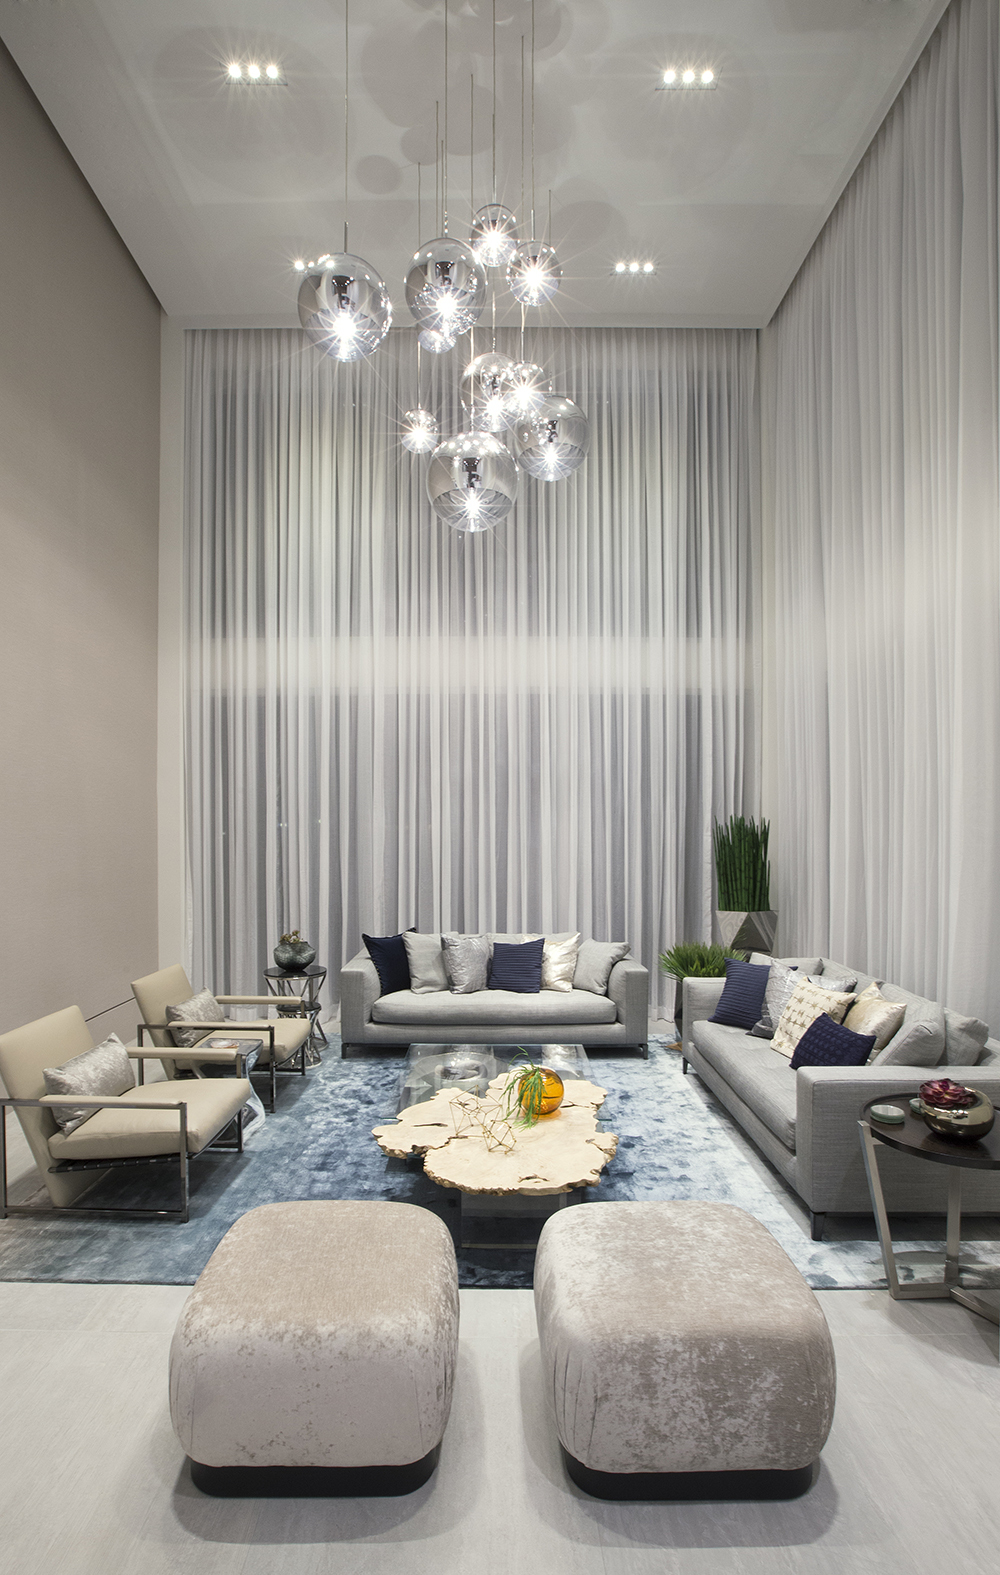 Contemporary twilight dkor interiors inc archinect for Residential living room interior design